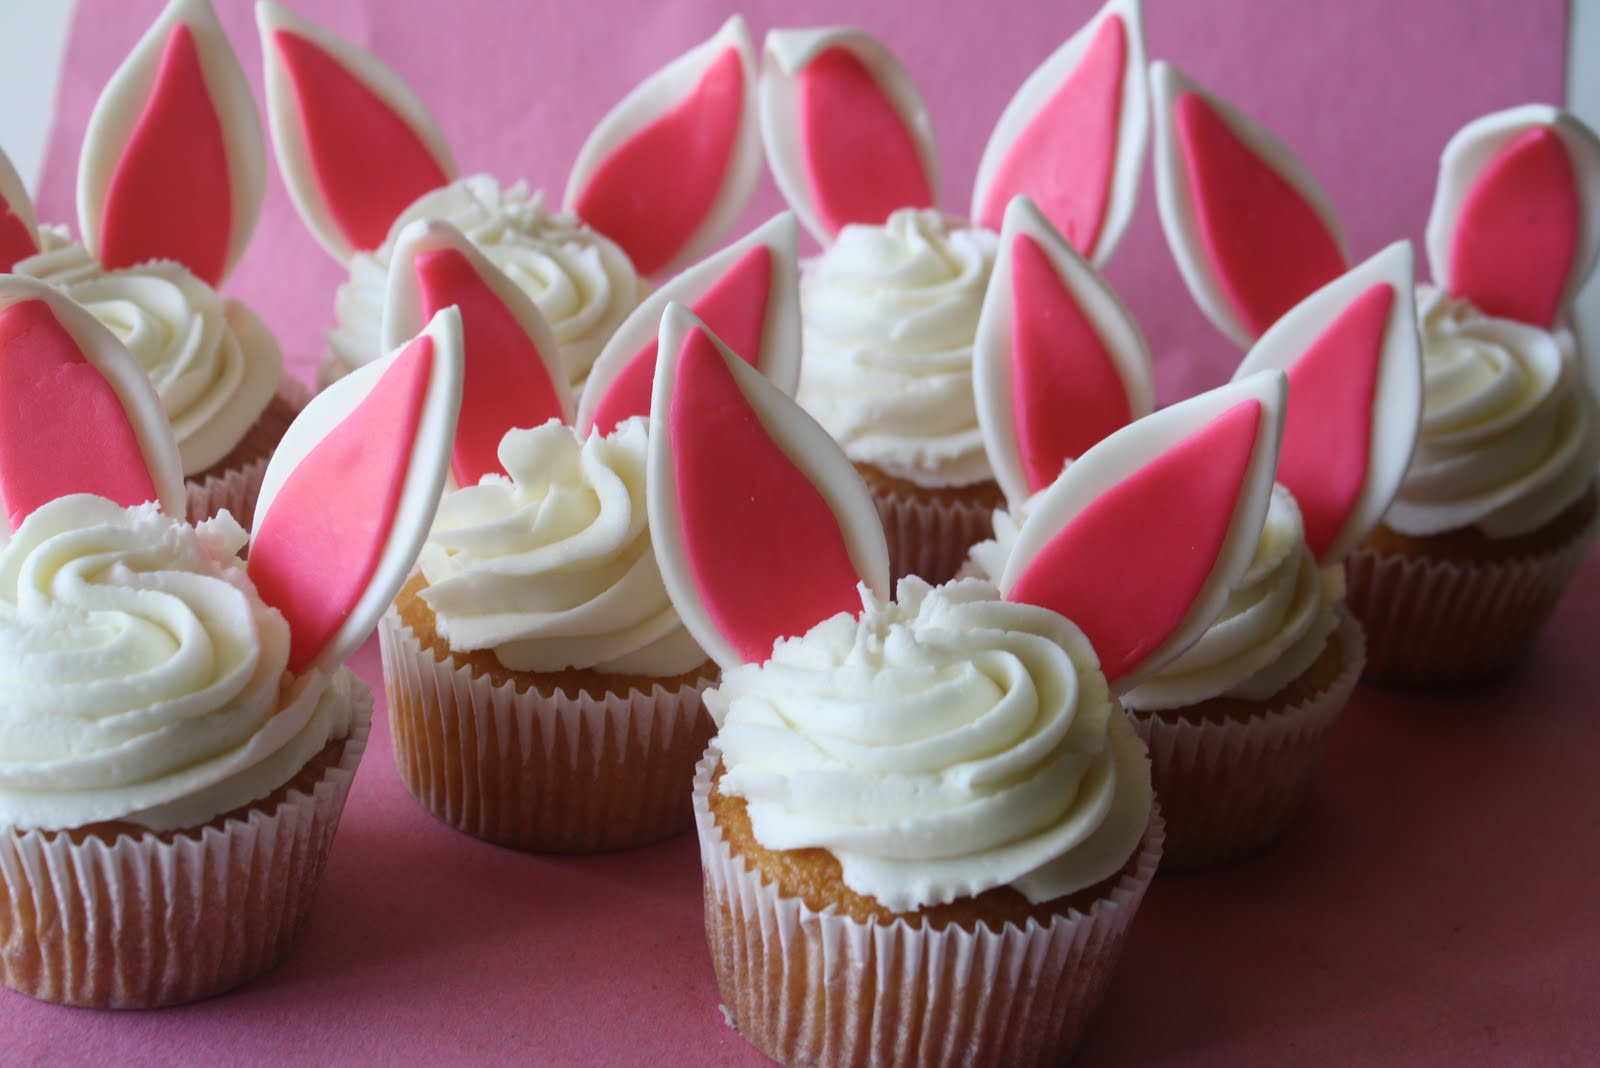 Easter With Easter Bunny Cake, Bunny Cupcakes, & Easter Egg Cookies